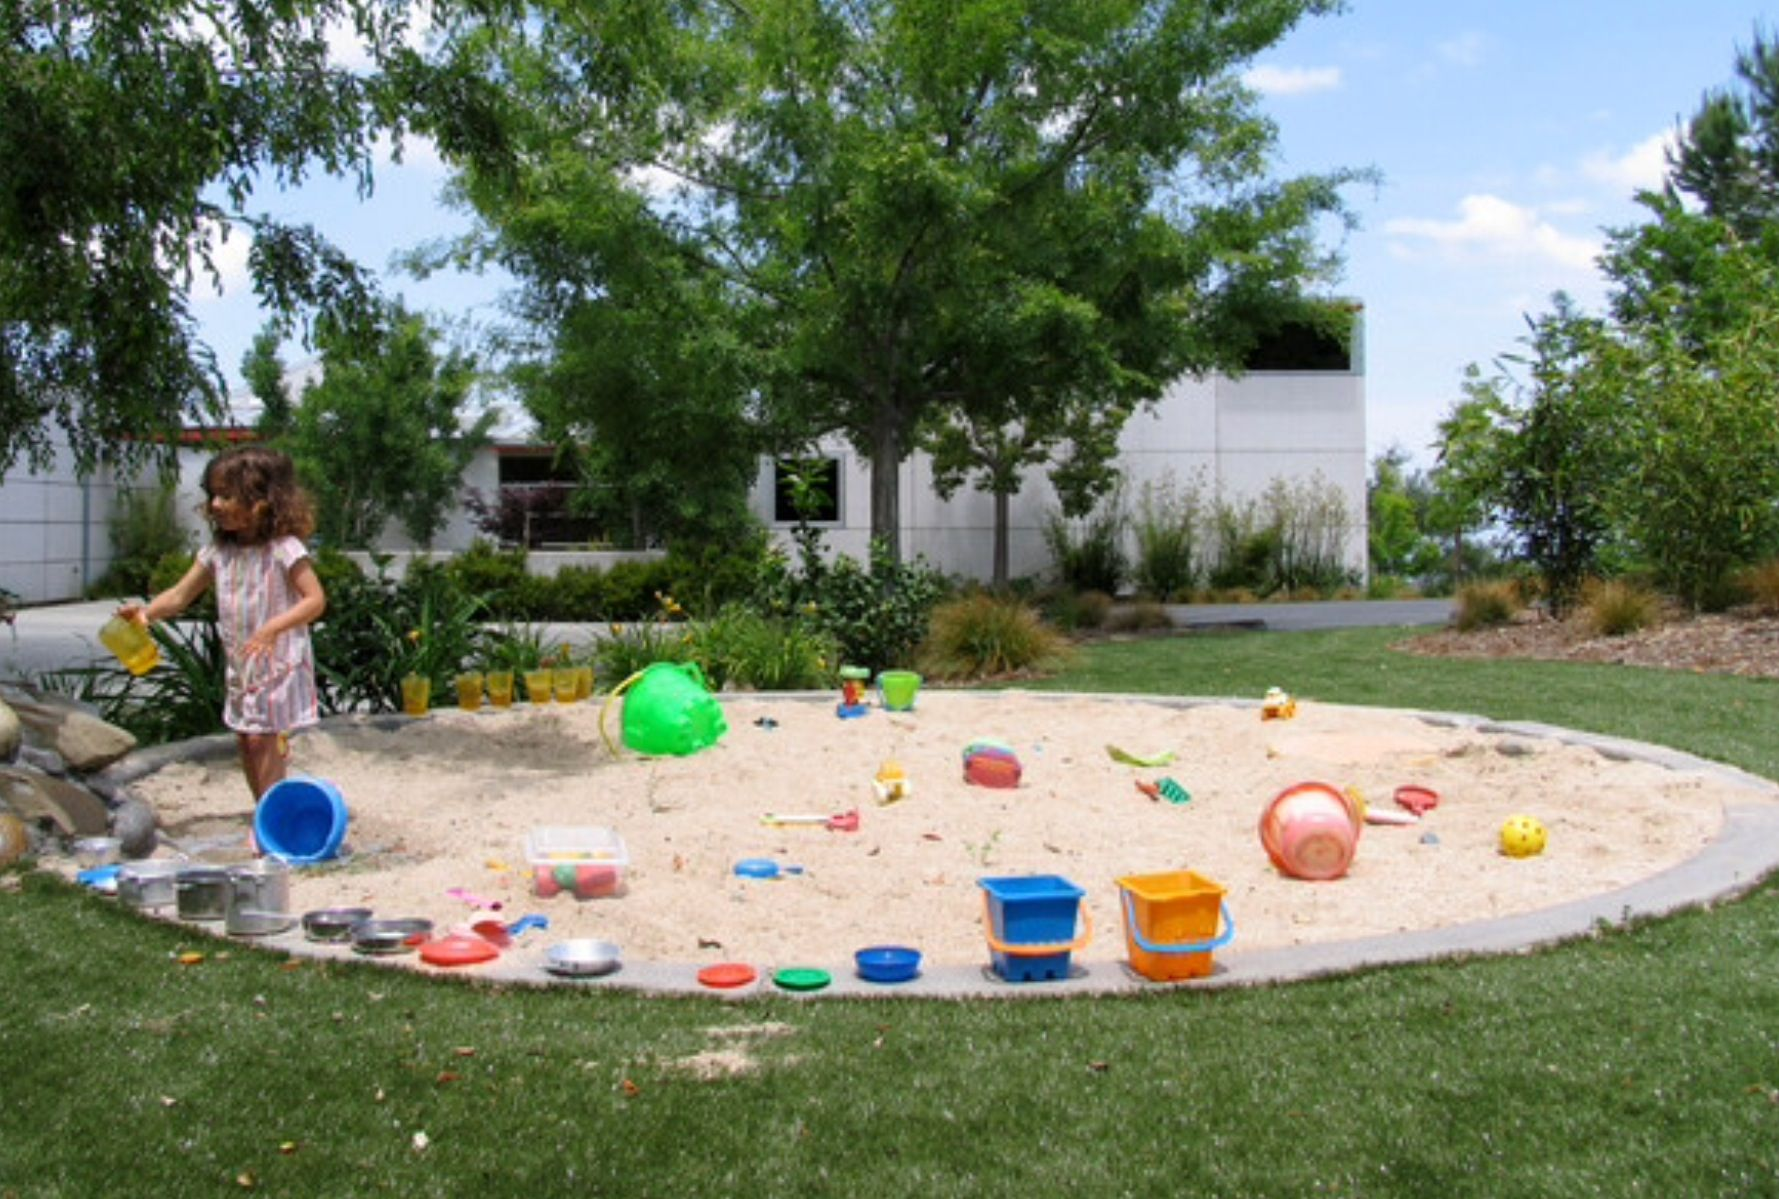 Fire Pit Area Use As Sand Box Large Backyard Landscaping Playground Design Outdoor Kids Play Area